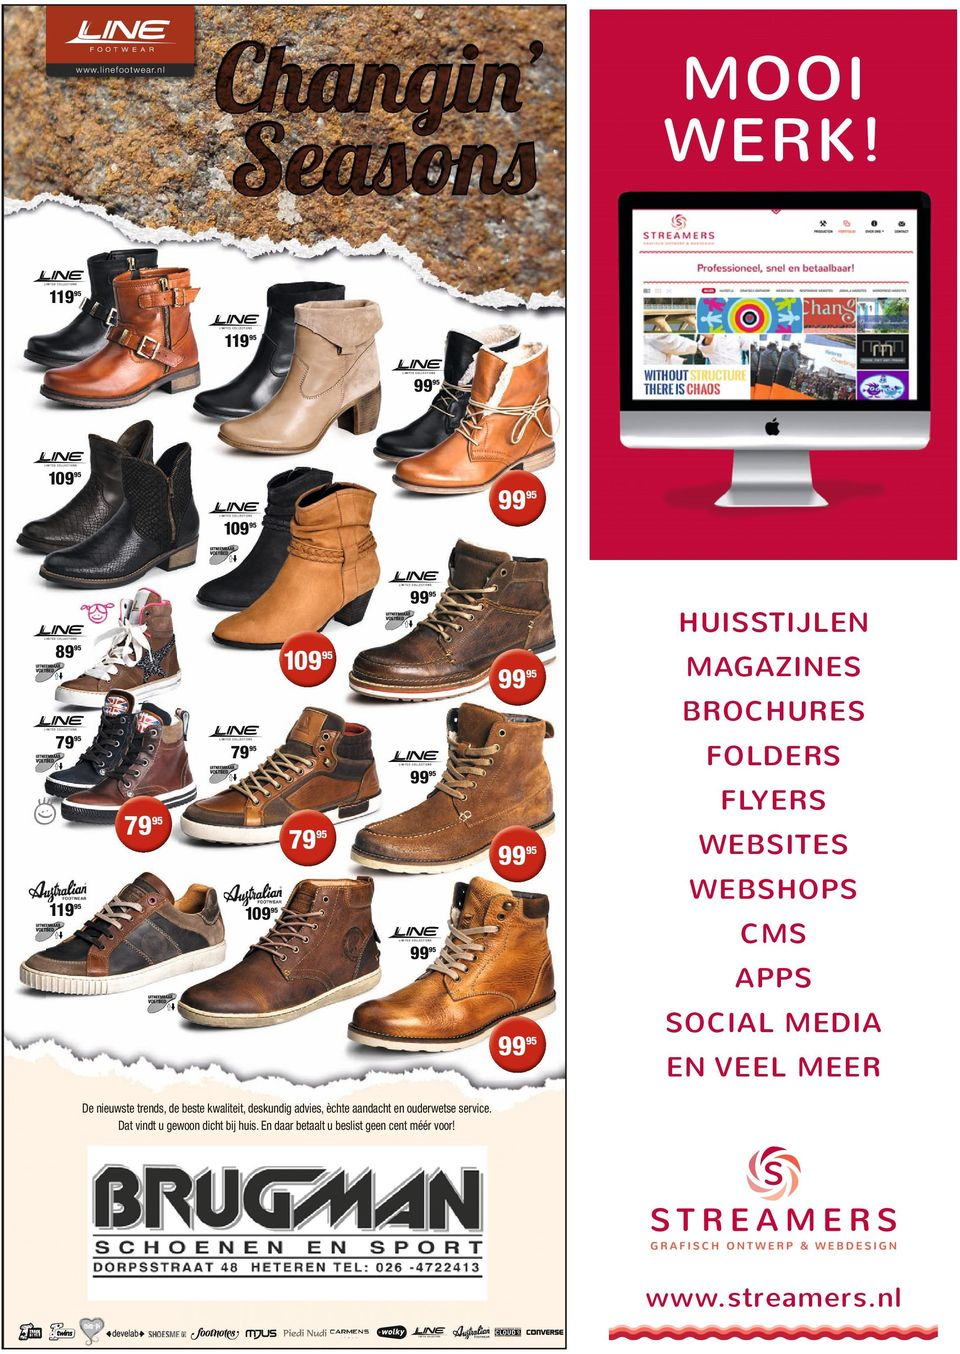 95 79 95 109 95 79 95 99 95 99 95 99 95 FOLDERS FLYERS WEBSITES WEBSHOPS CMS APPS 99 95 SOCIAL MEDIA EN VEEL